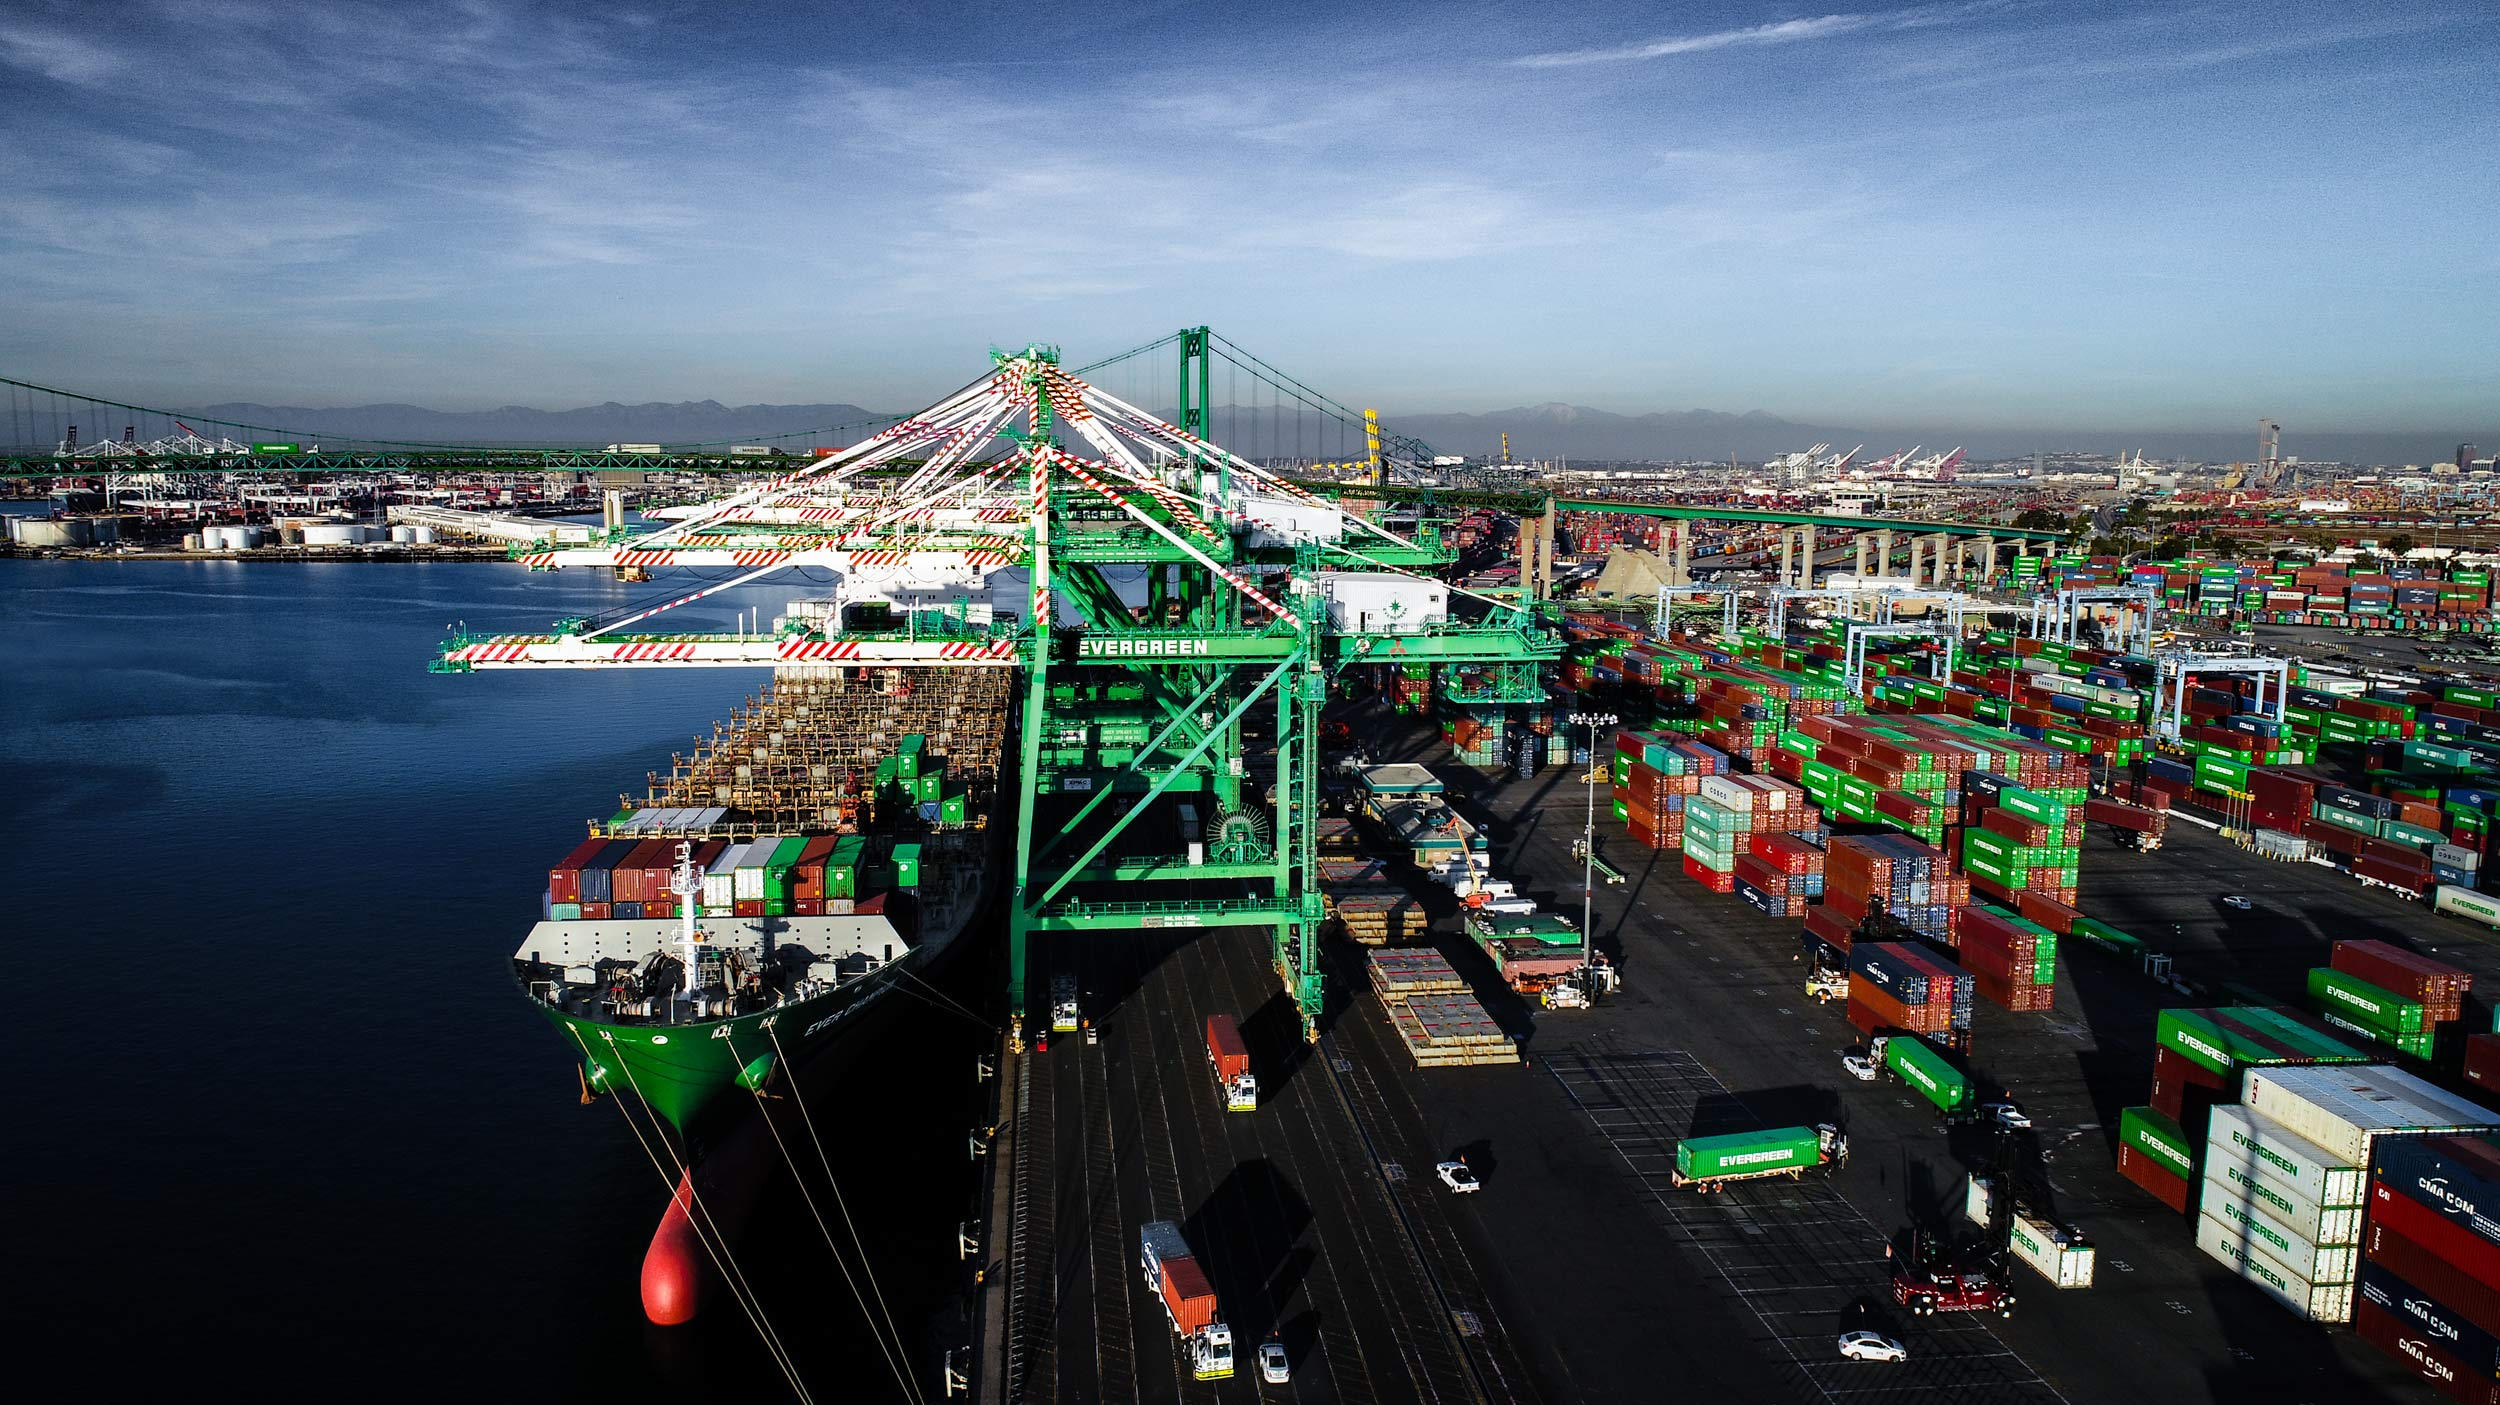 Aerial view of Evergreen crane unloading shipping containers from a ship onto semi trucks in the Port of Long Beach | Scott Gable industrial photographer